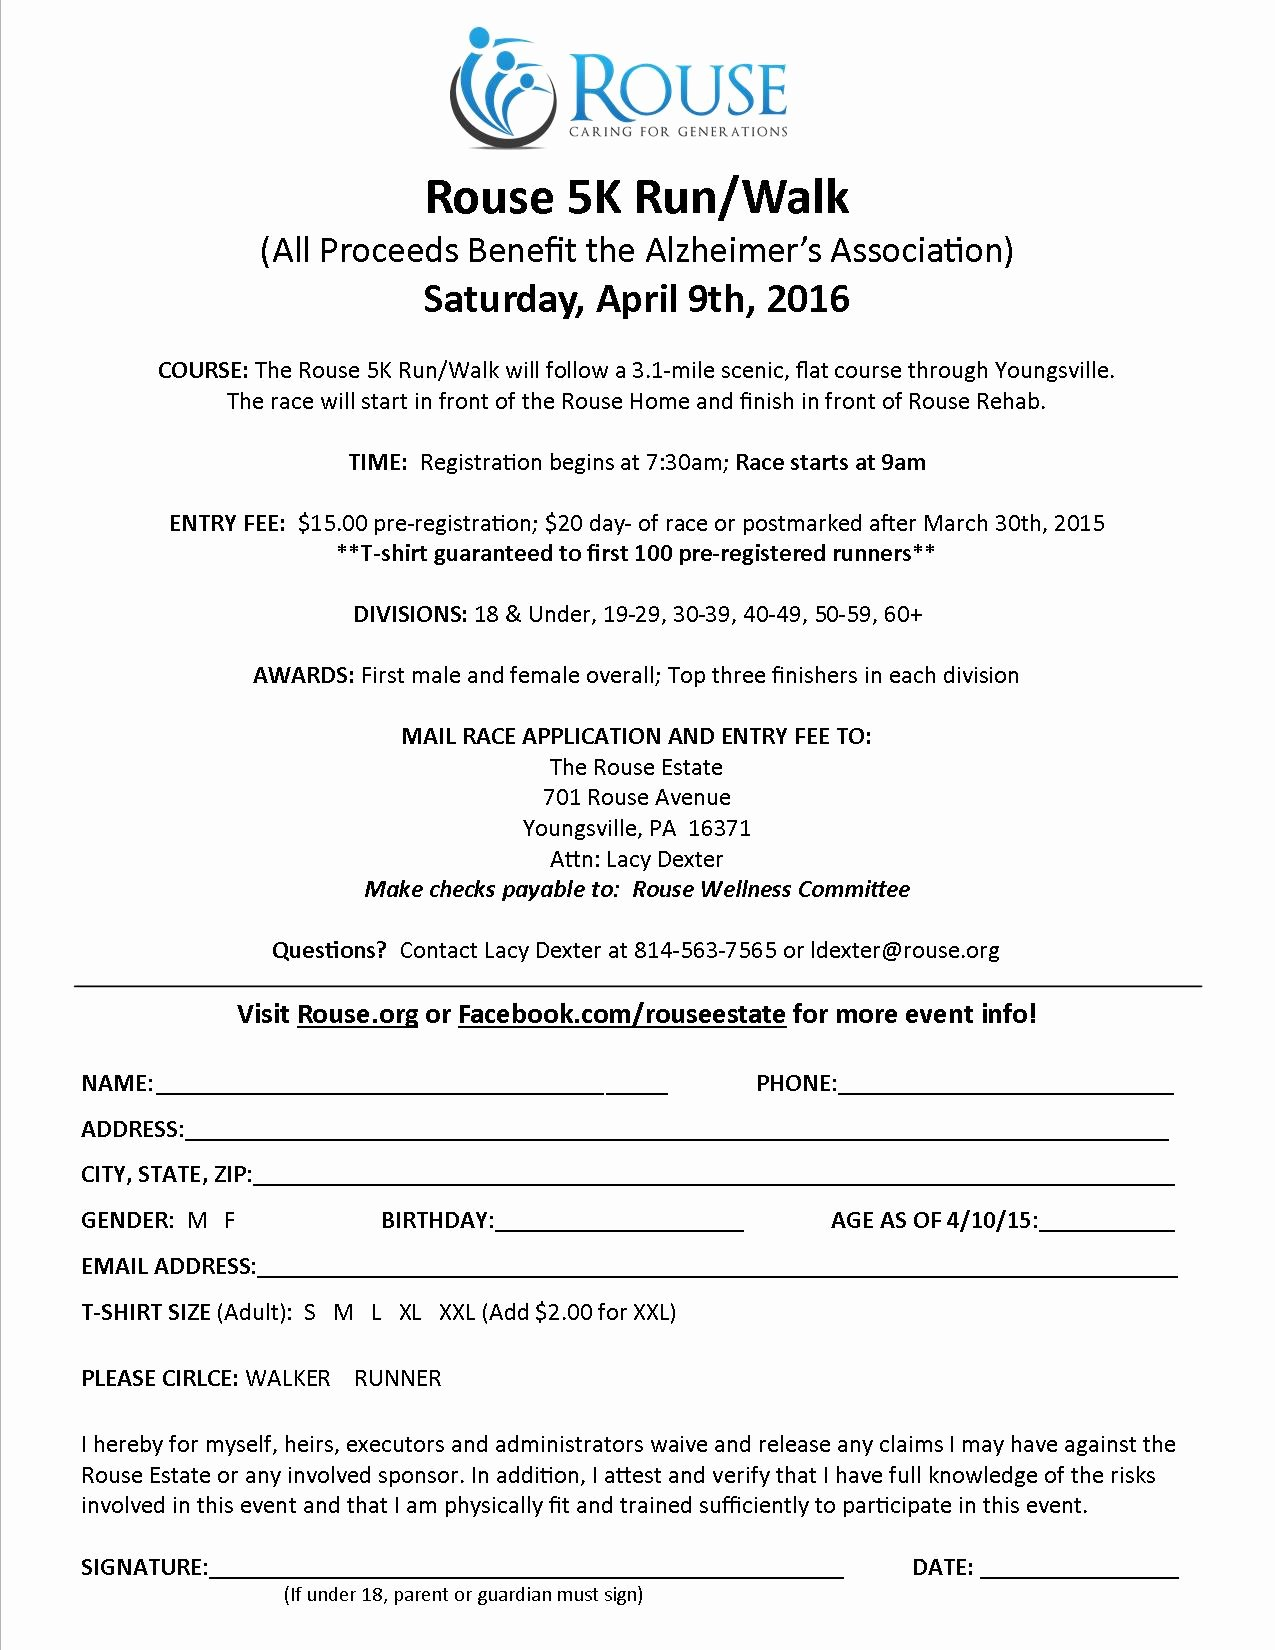 Race Registration form Luxury Erie Runners Clubrouse 5k Run Walk